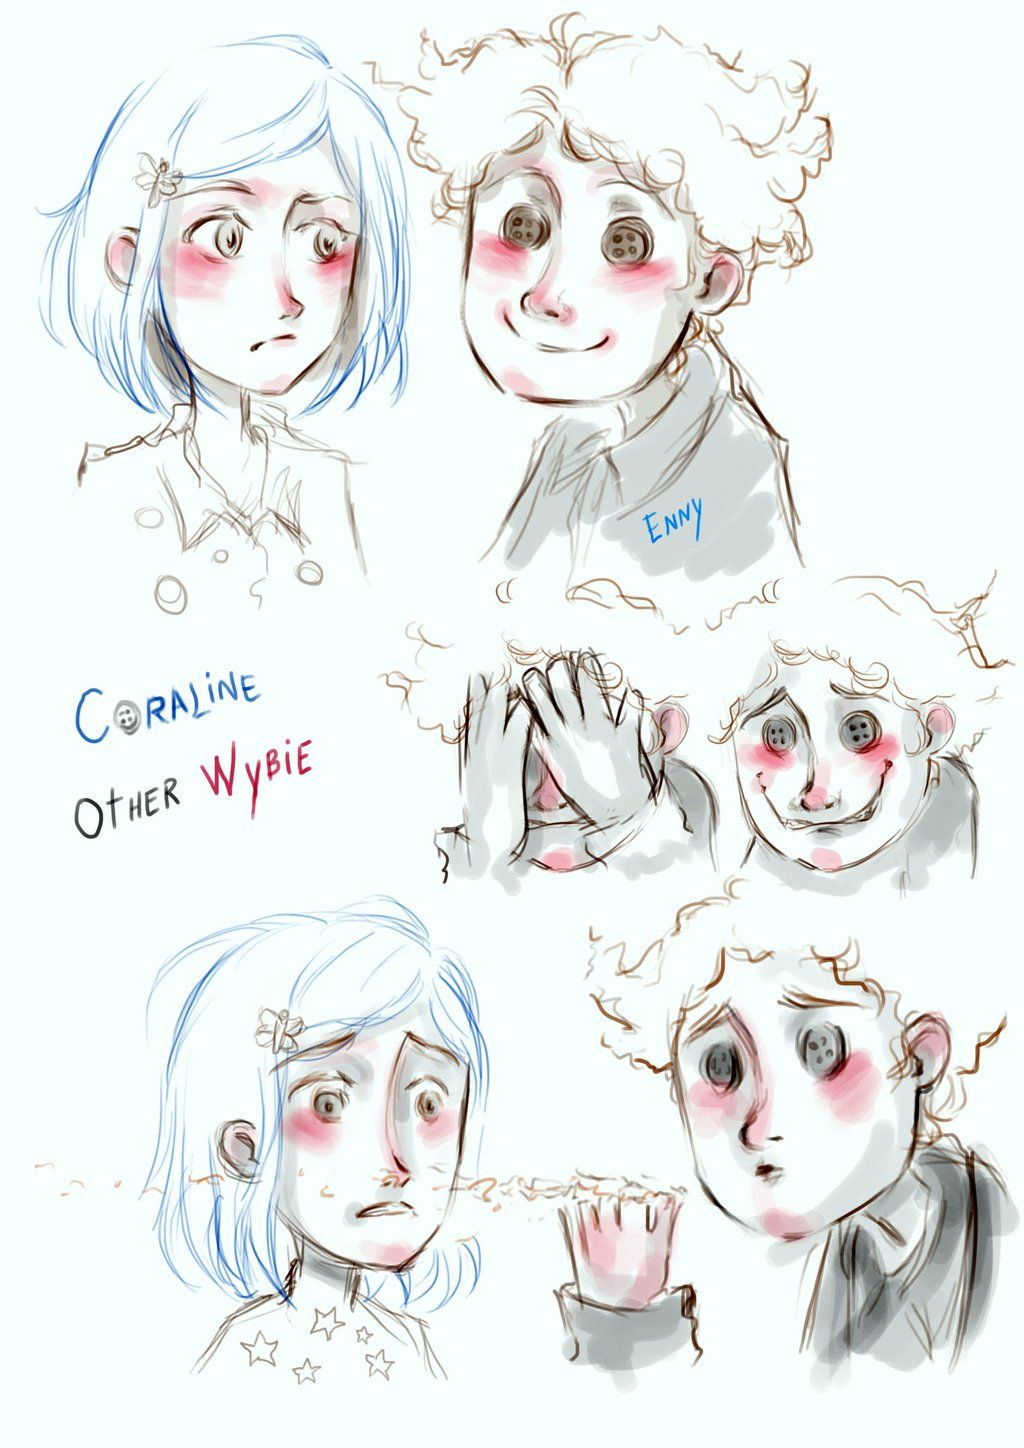 Coraline Other Wybie Kiss Wiring Diagrams Simple Trf Receiver Circuit Diagram Tradeoficcom And By Ennylarok Deviantart Com On Rh Pinterest Characters